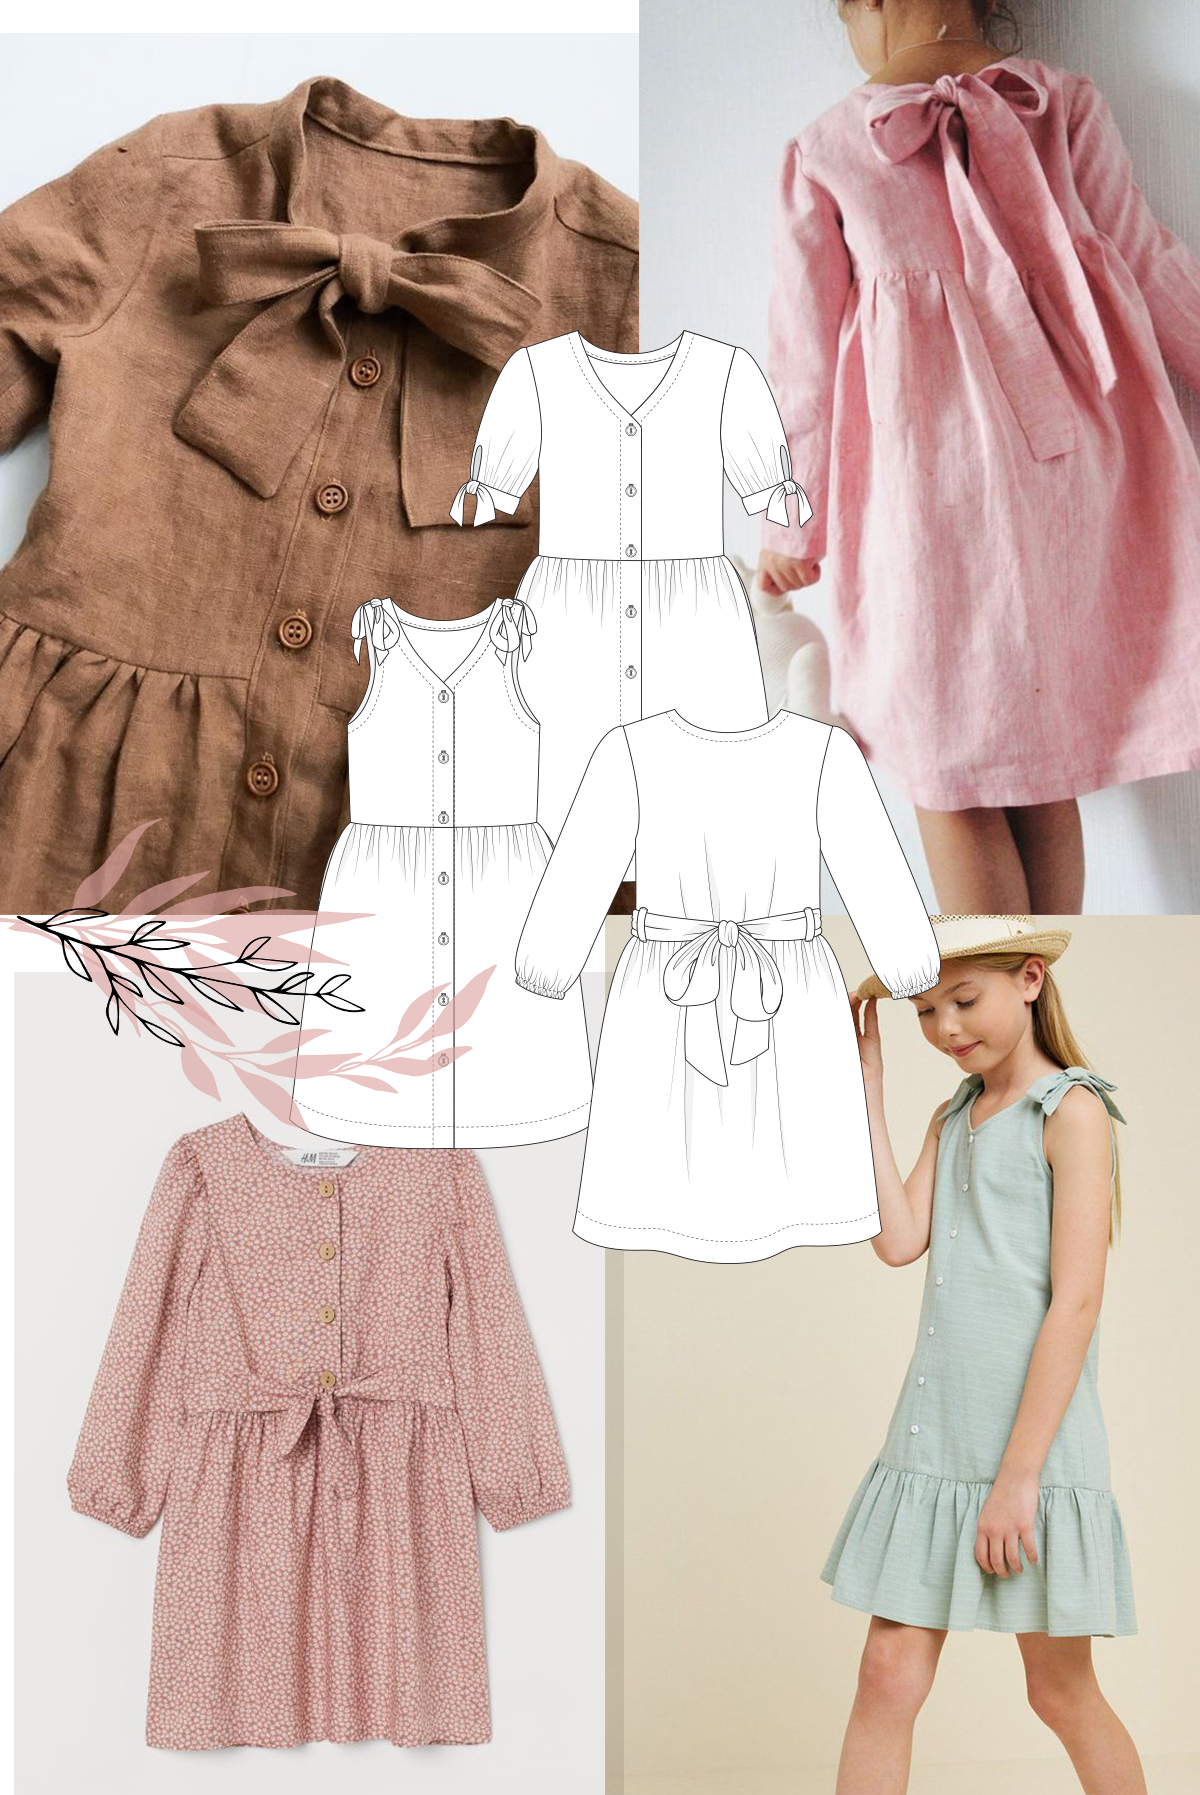 Add a bow or tie to your Mini Darling Ranges dress